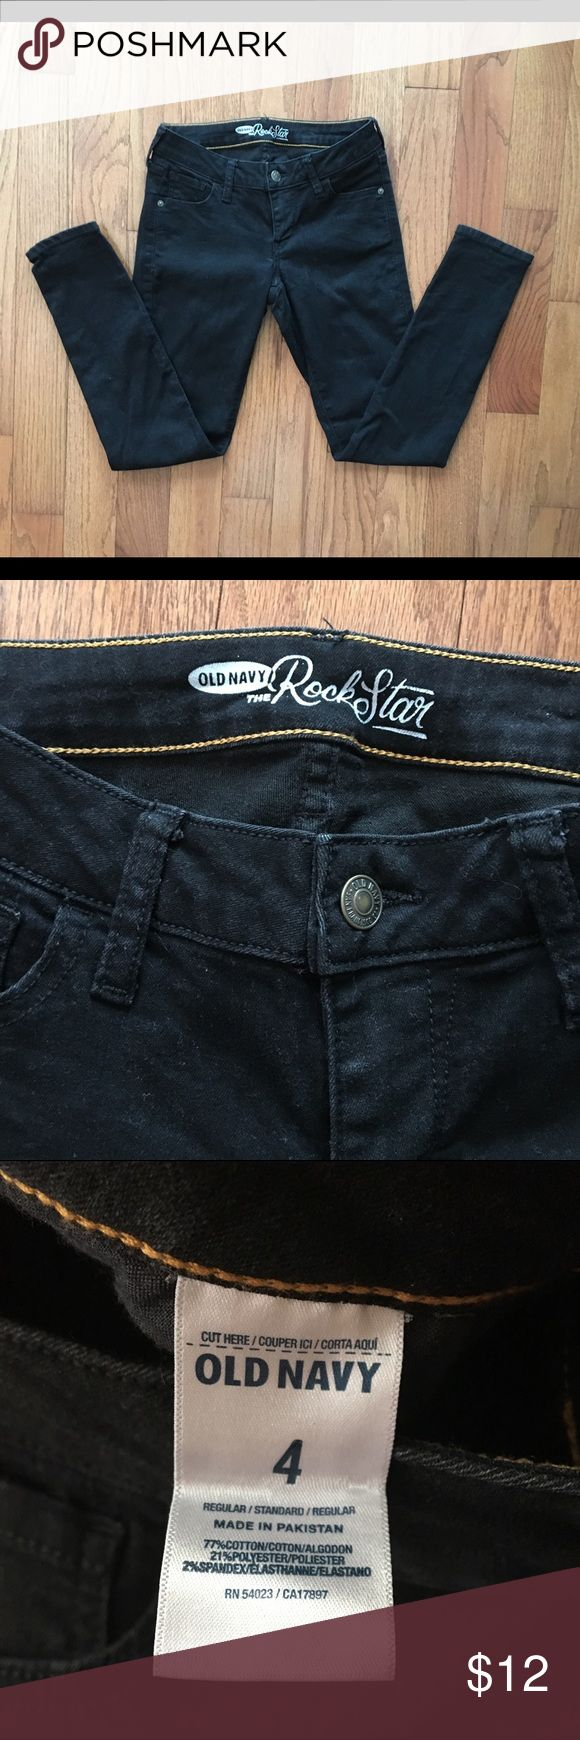 Old Navy Rockstar jeans BLACK Sz 4 Old Navy black in color rockstar jeans. Size 4. You can dress these up, or dress them down. Wear them with flip-flops, heels, sandals or boots. Old Navy Jeans Overalls